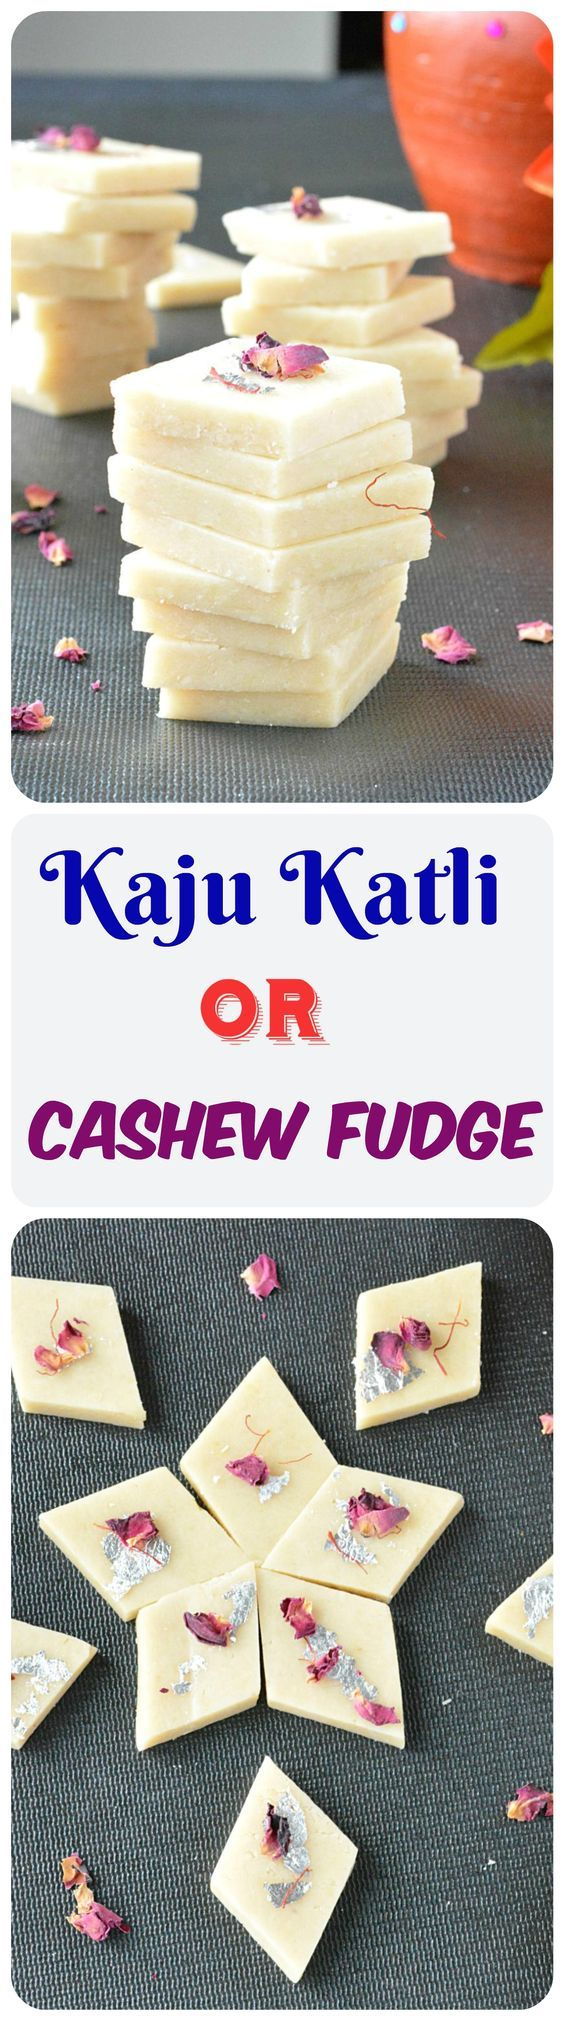 Kaju katli or Cashew fudge is a popular Indian festive sweet prepared with cashews and sugar syrup. A gluten-free and vegetarian recipe.